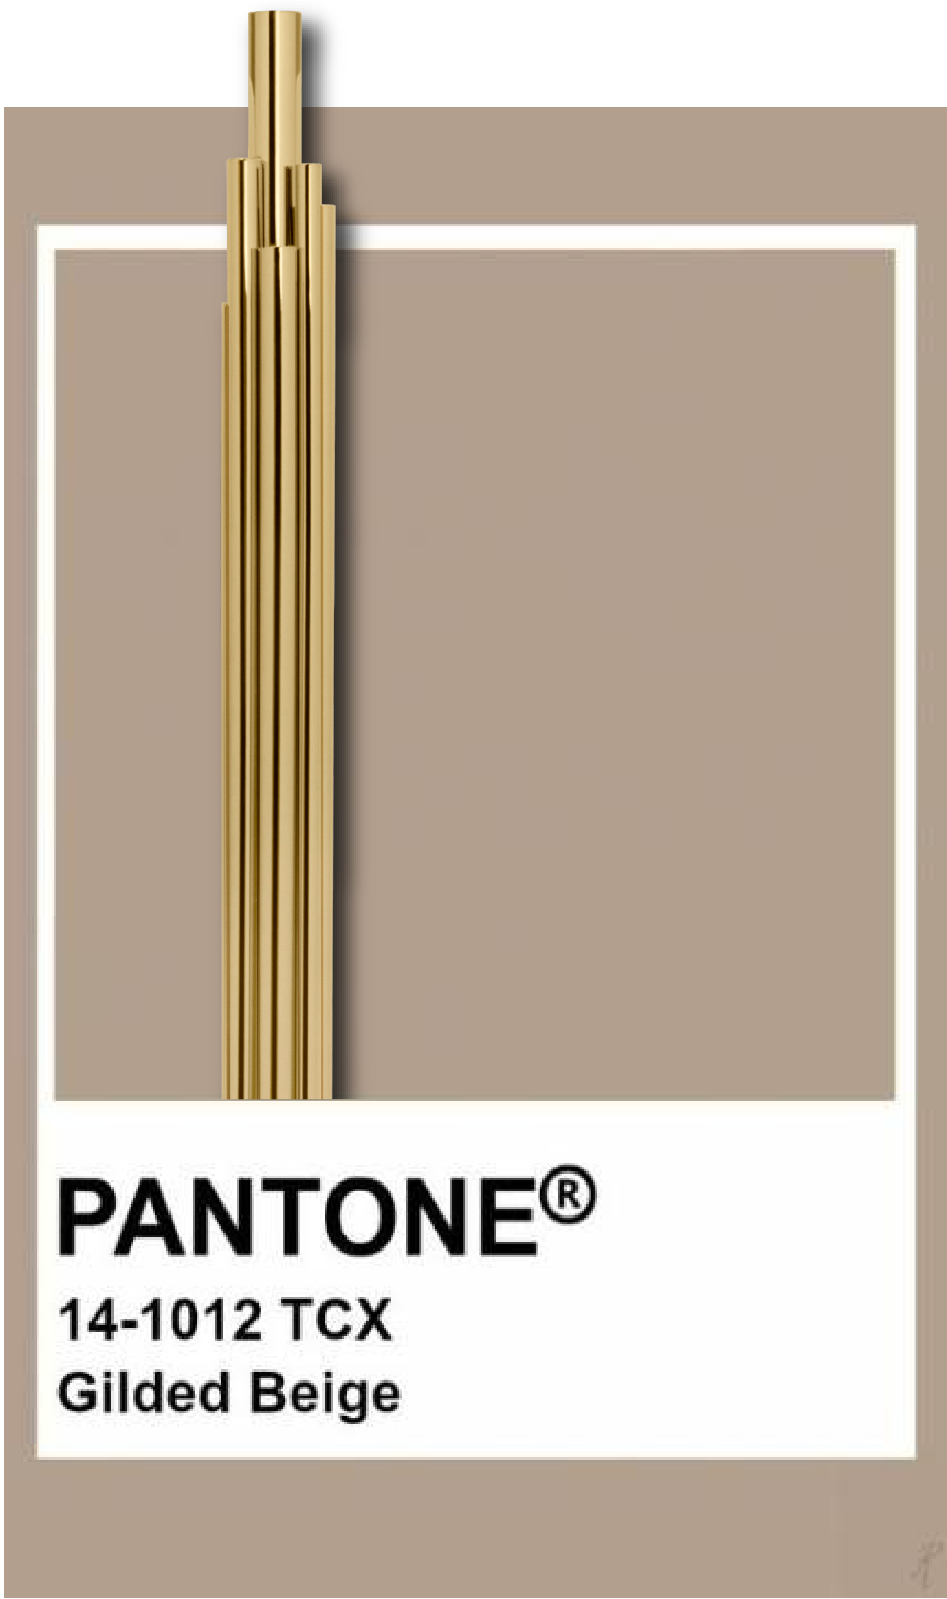 Pantone Color of The Year: PullCast Edition pantone color of the year 2020 Pantone Color of The Year 2020: PullCast Edition Patones Pullcast 04 e1576077500169